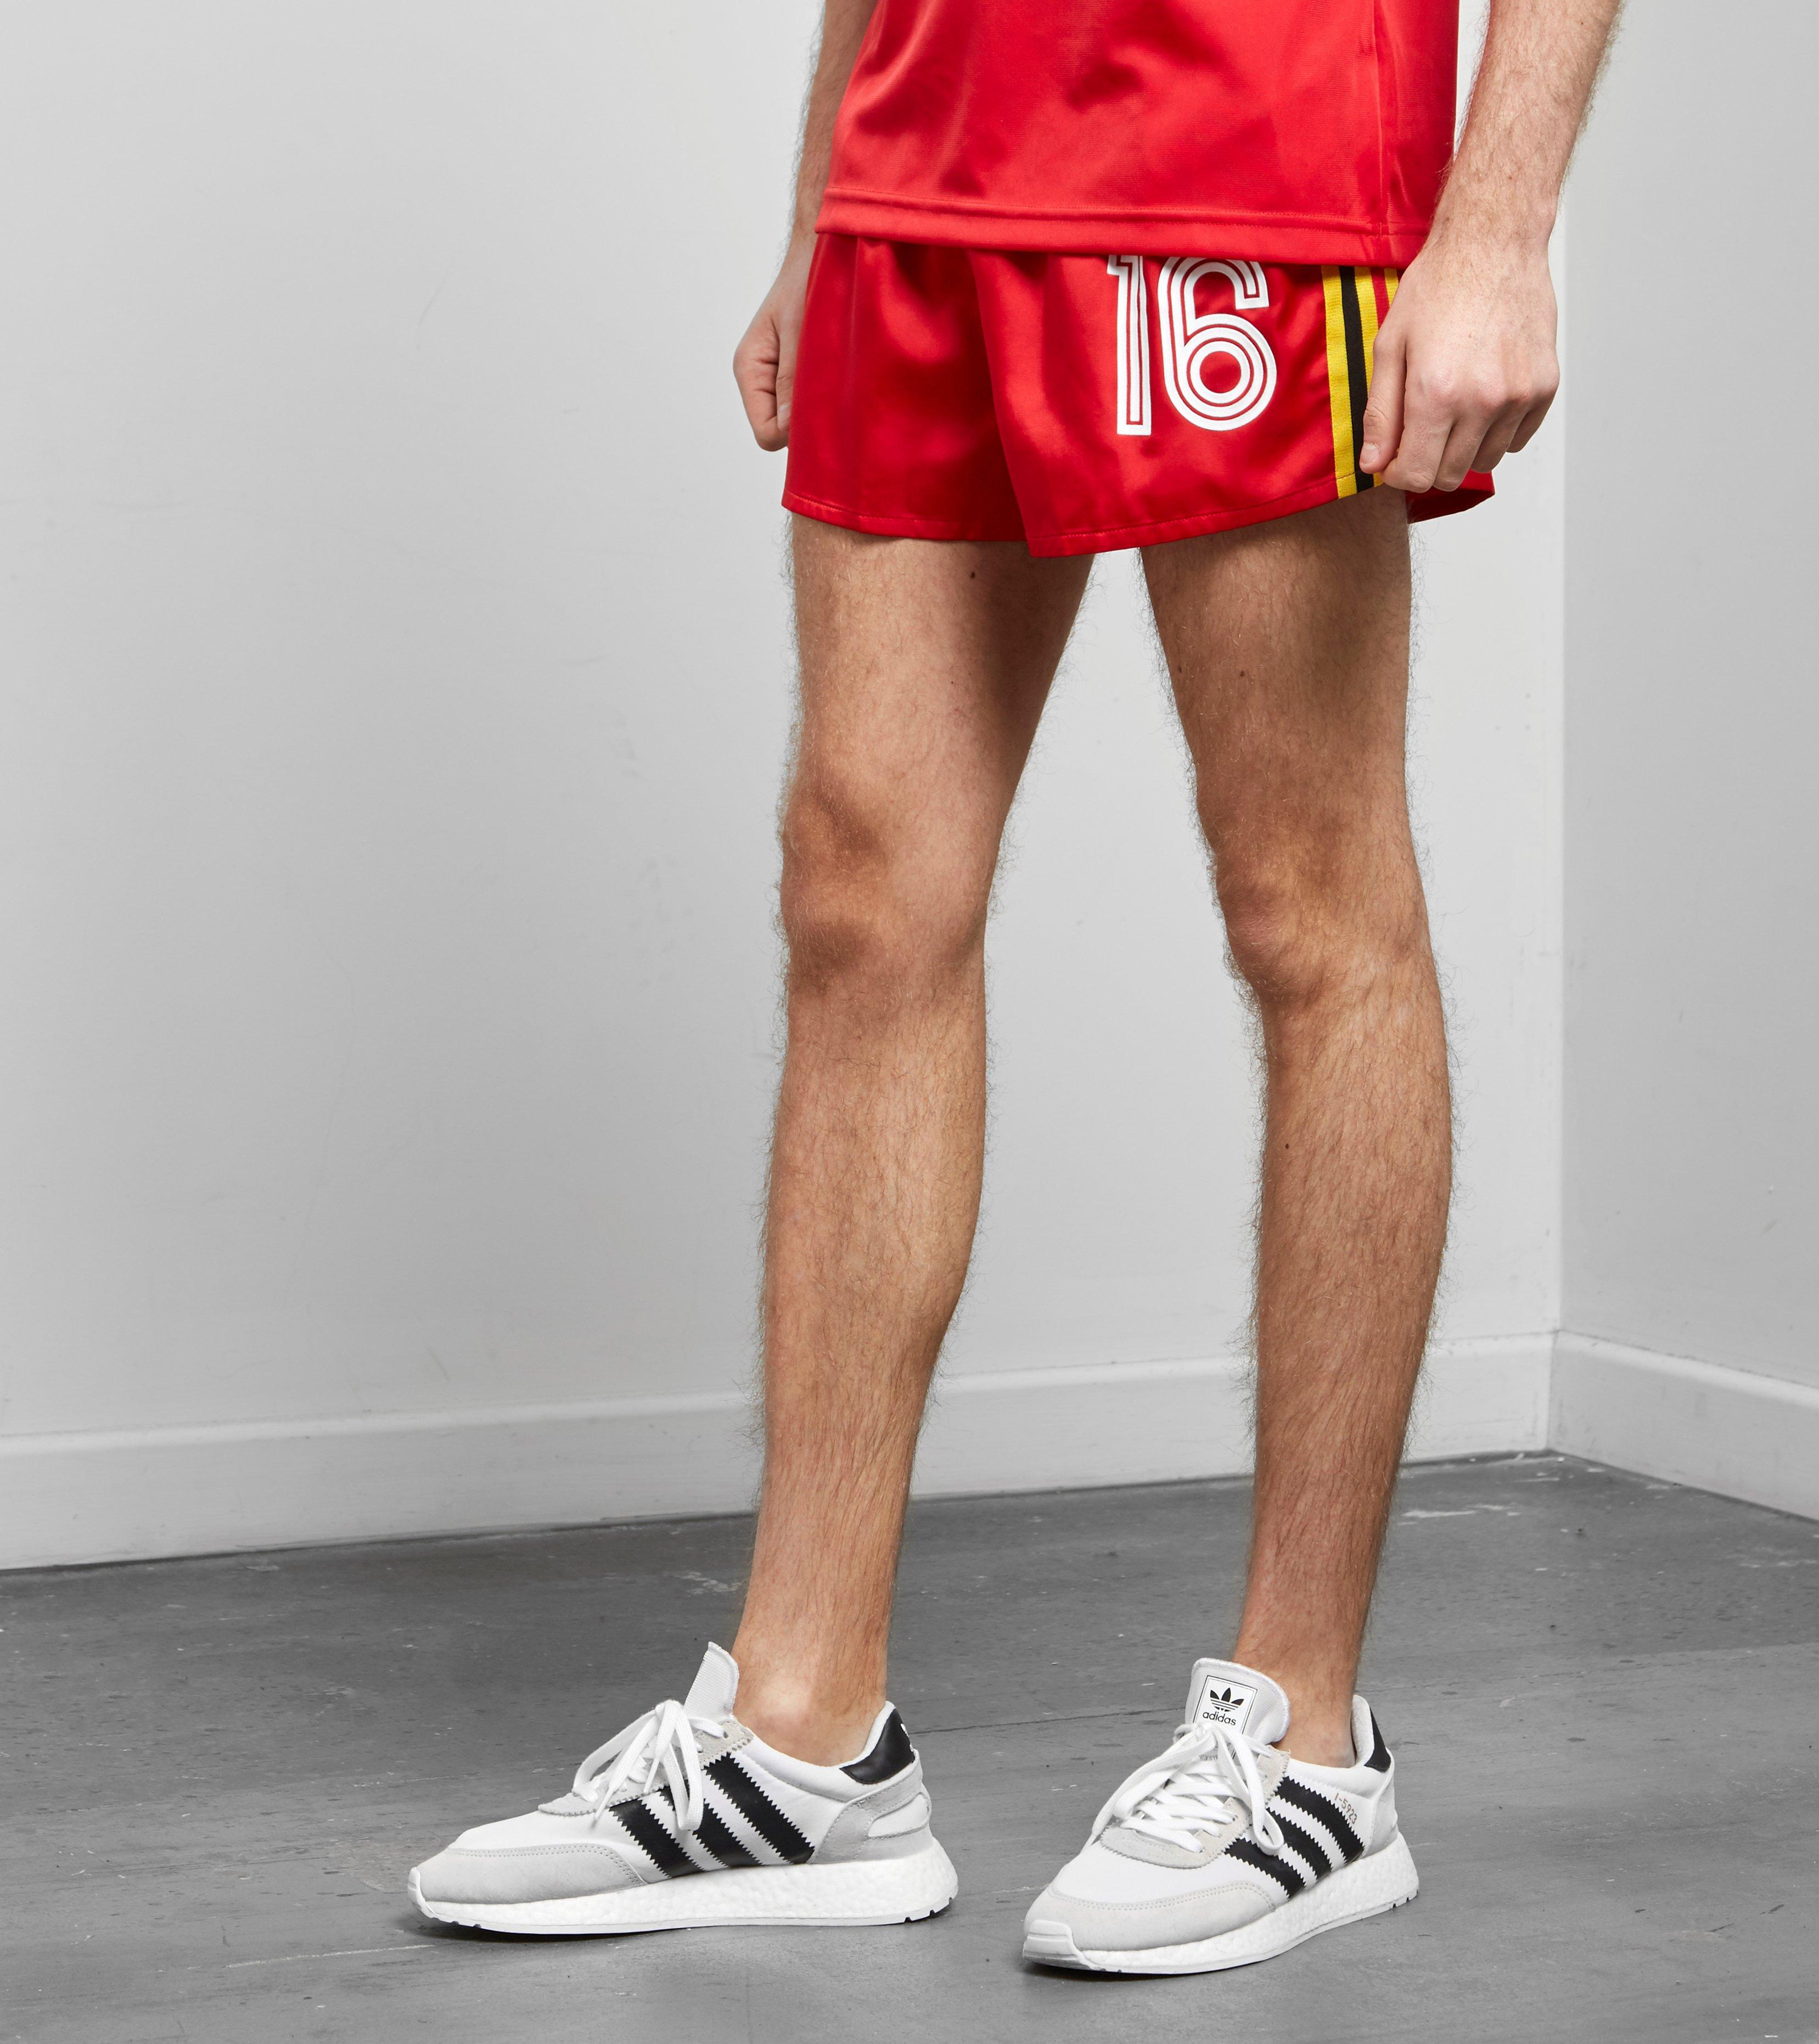 release date a4813 6c9b9 adidas Originals Belgium 1984 Shorts in Red for Men - Lyst